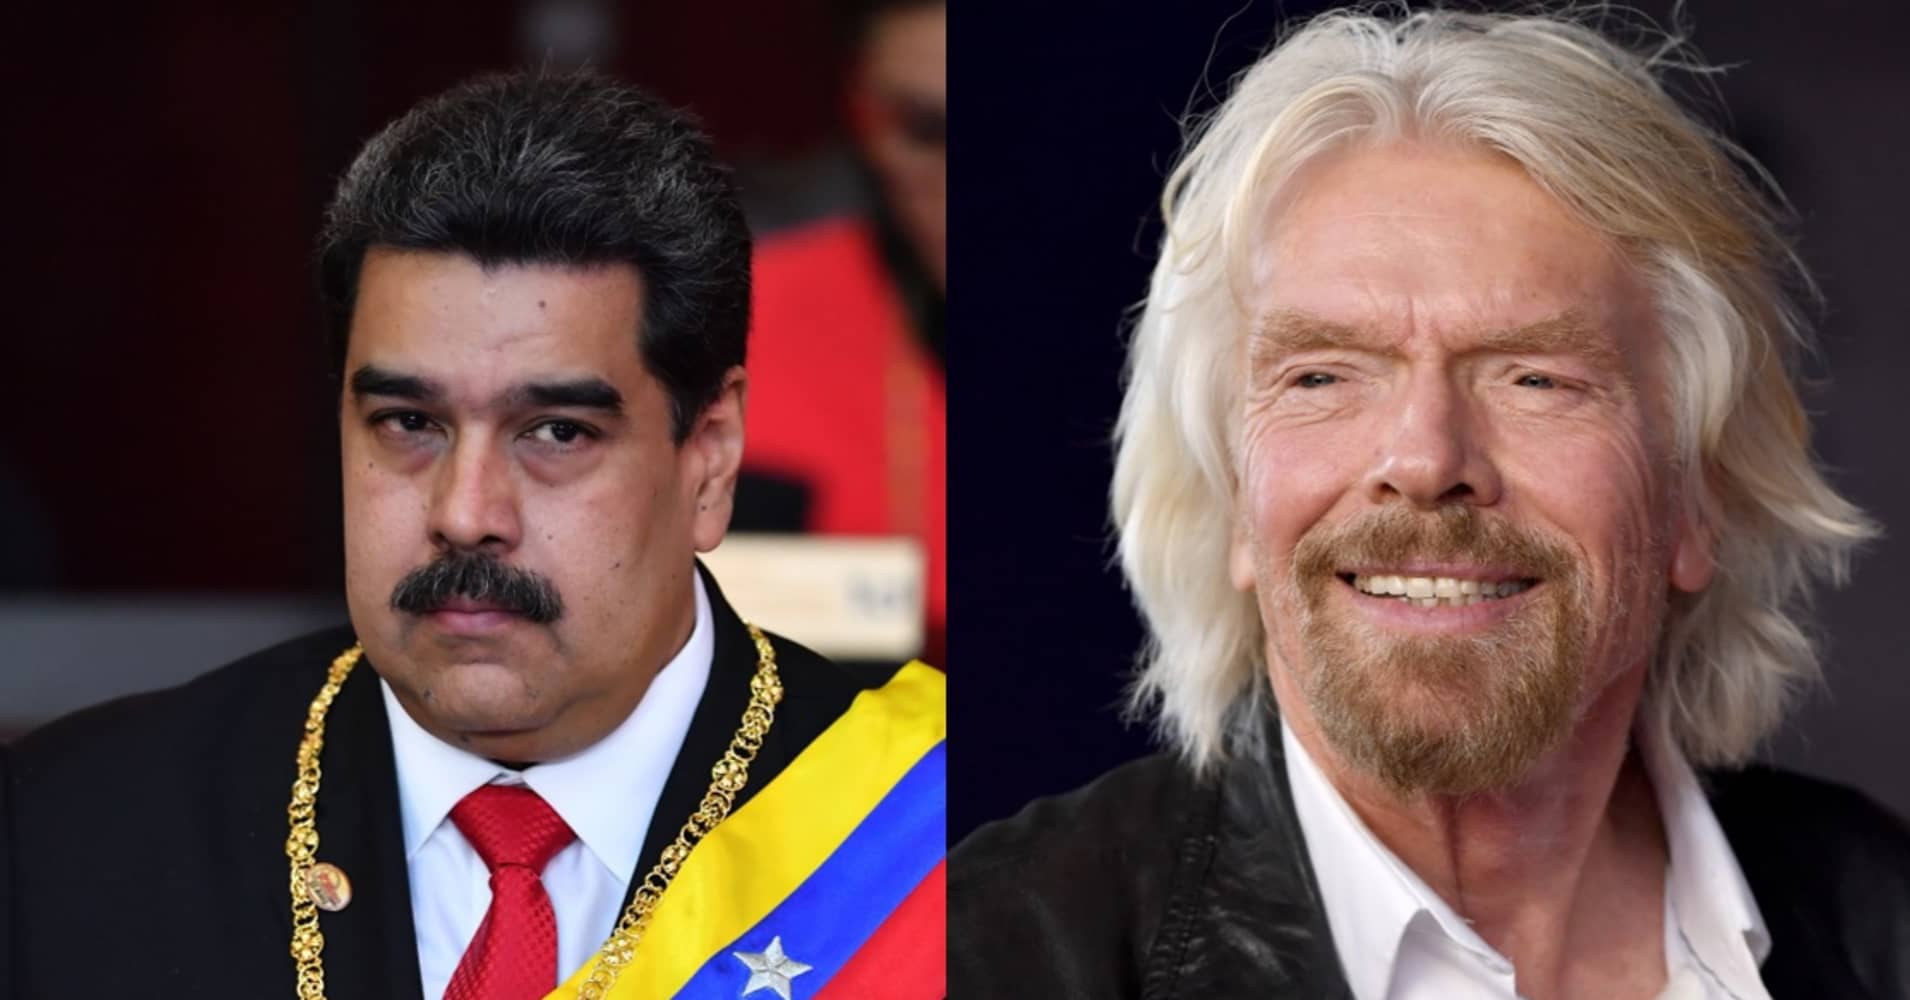 Richard Branson faces competition from Maduro with rival concert on Venezuela's border - CNBC thumbnail